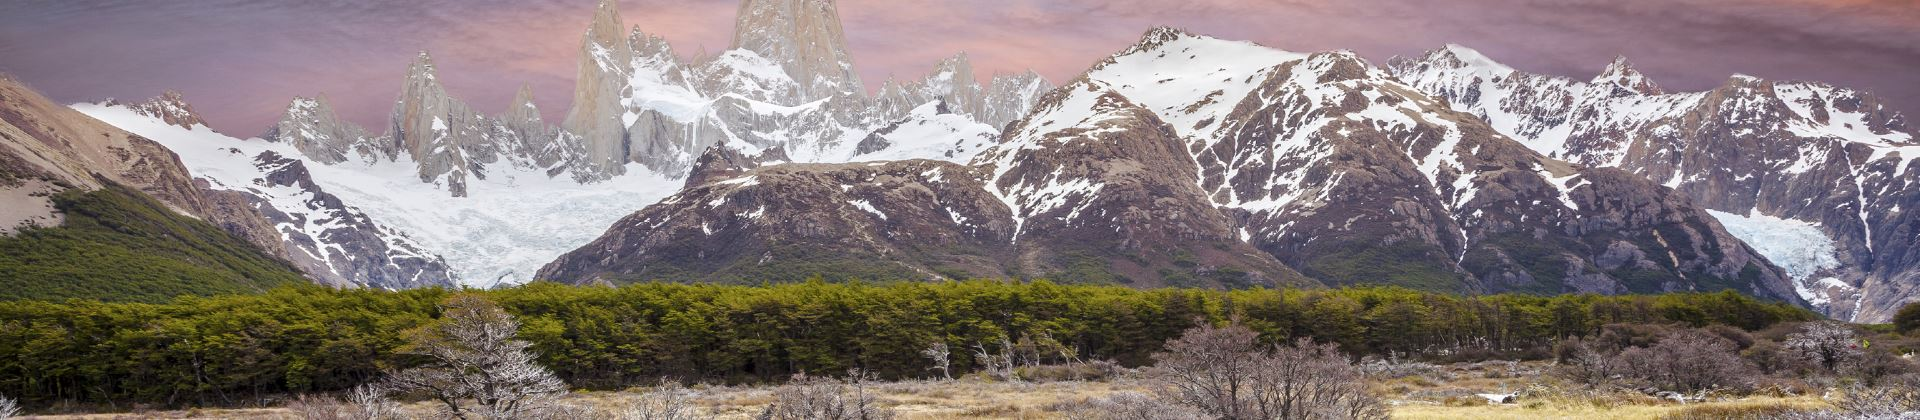 Mount Fitz Roy in Argentinië